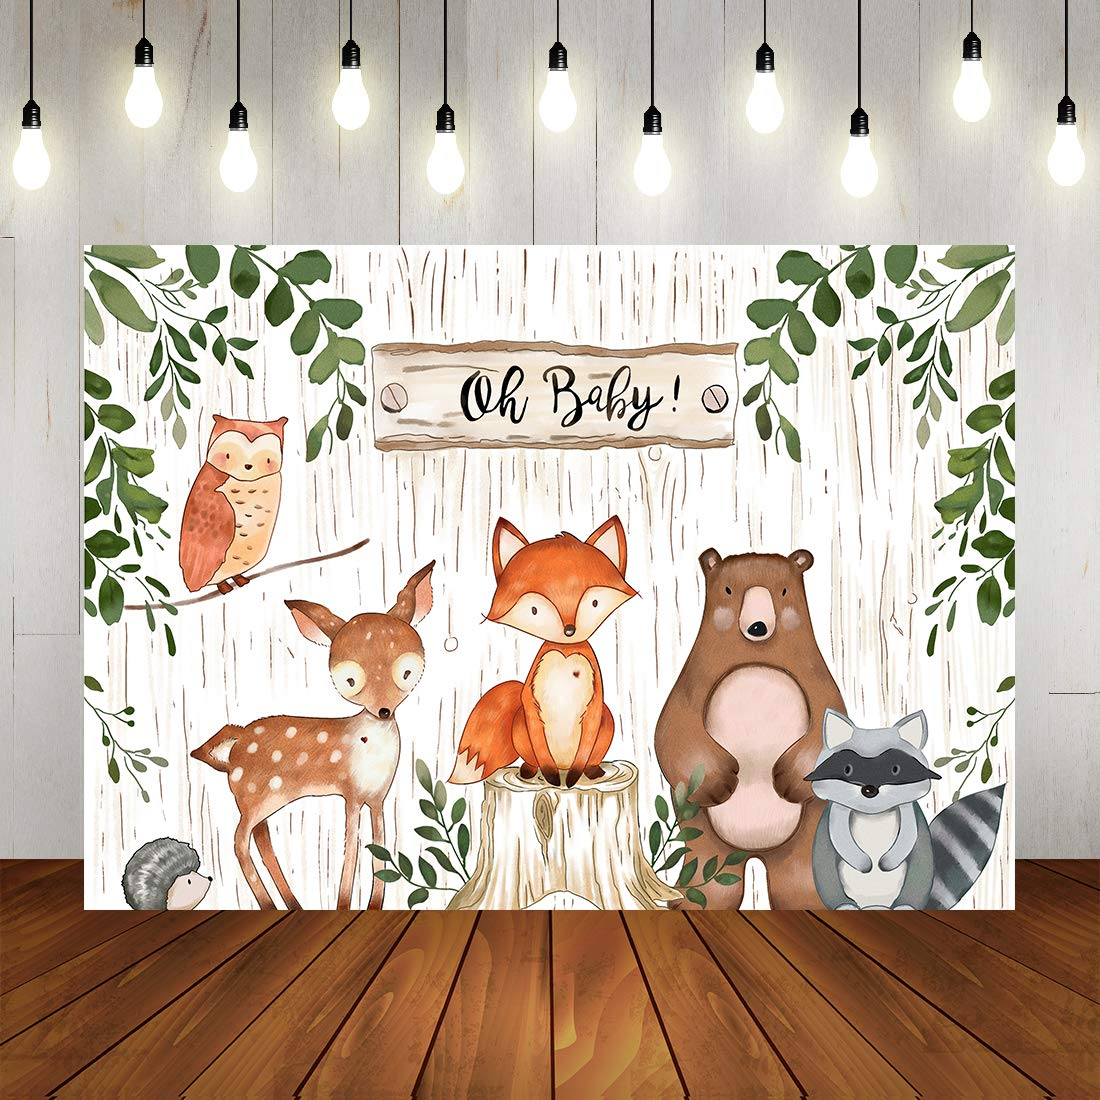 Woodland Baby Shower Backdrop Jungle Animals Theme Banner Happy Birthdays Party Decorations for Kids 7x5ft